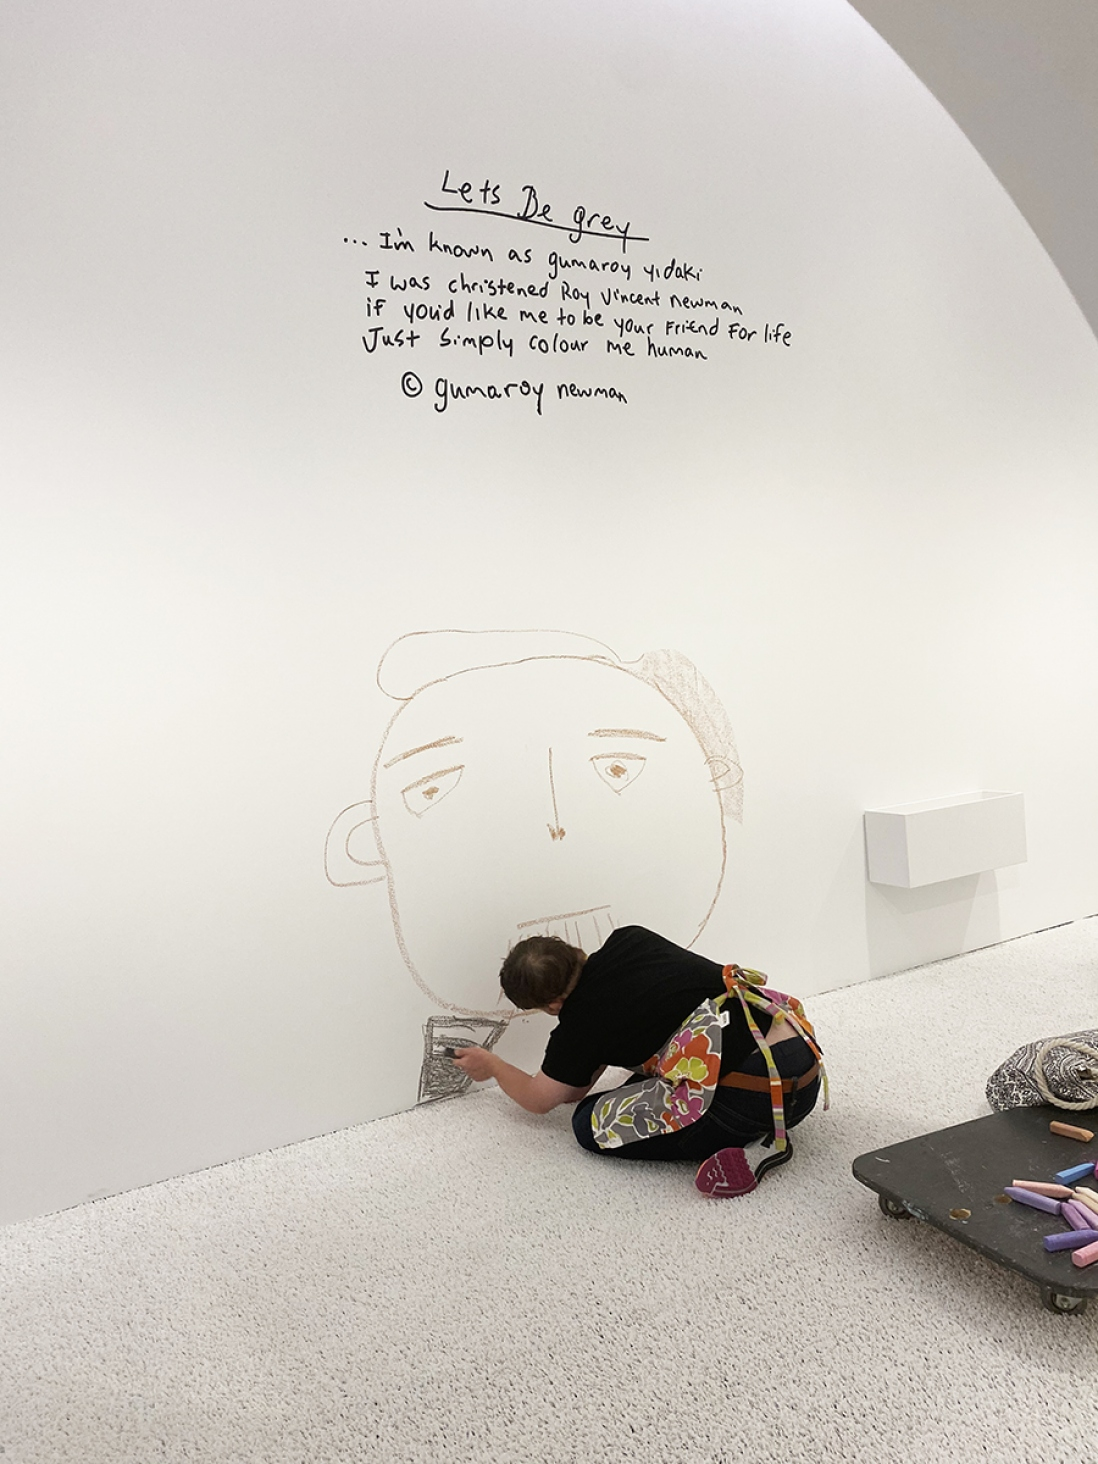 Digby Webster drawing on the wall during Make Your Mark exhibition